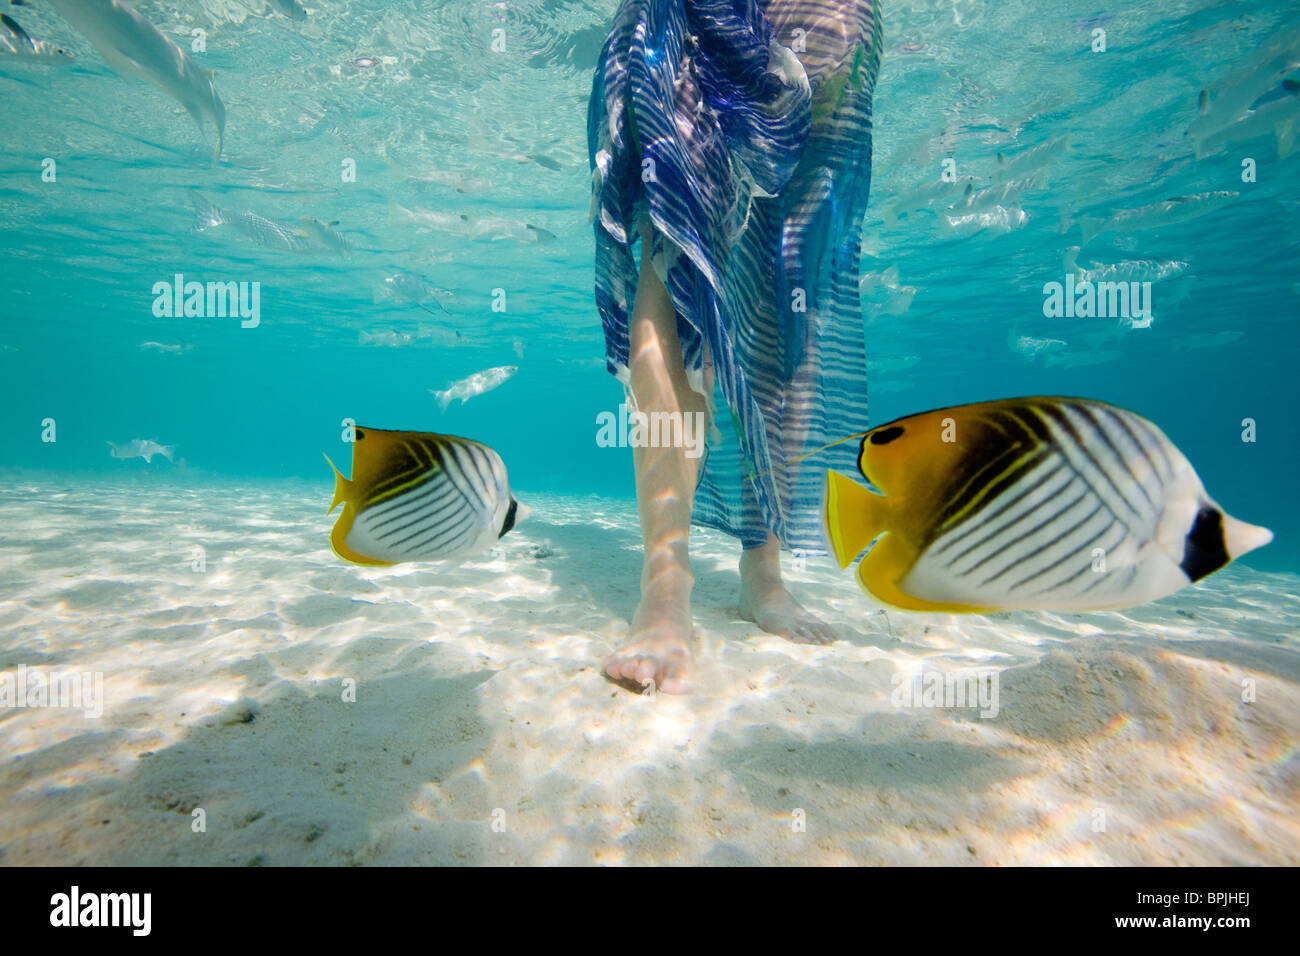 South Pacific, Bora Bora, female tourist walking in ocean. - Stock Image